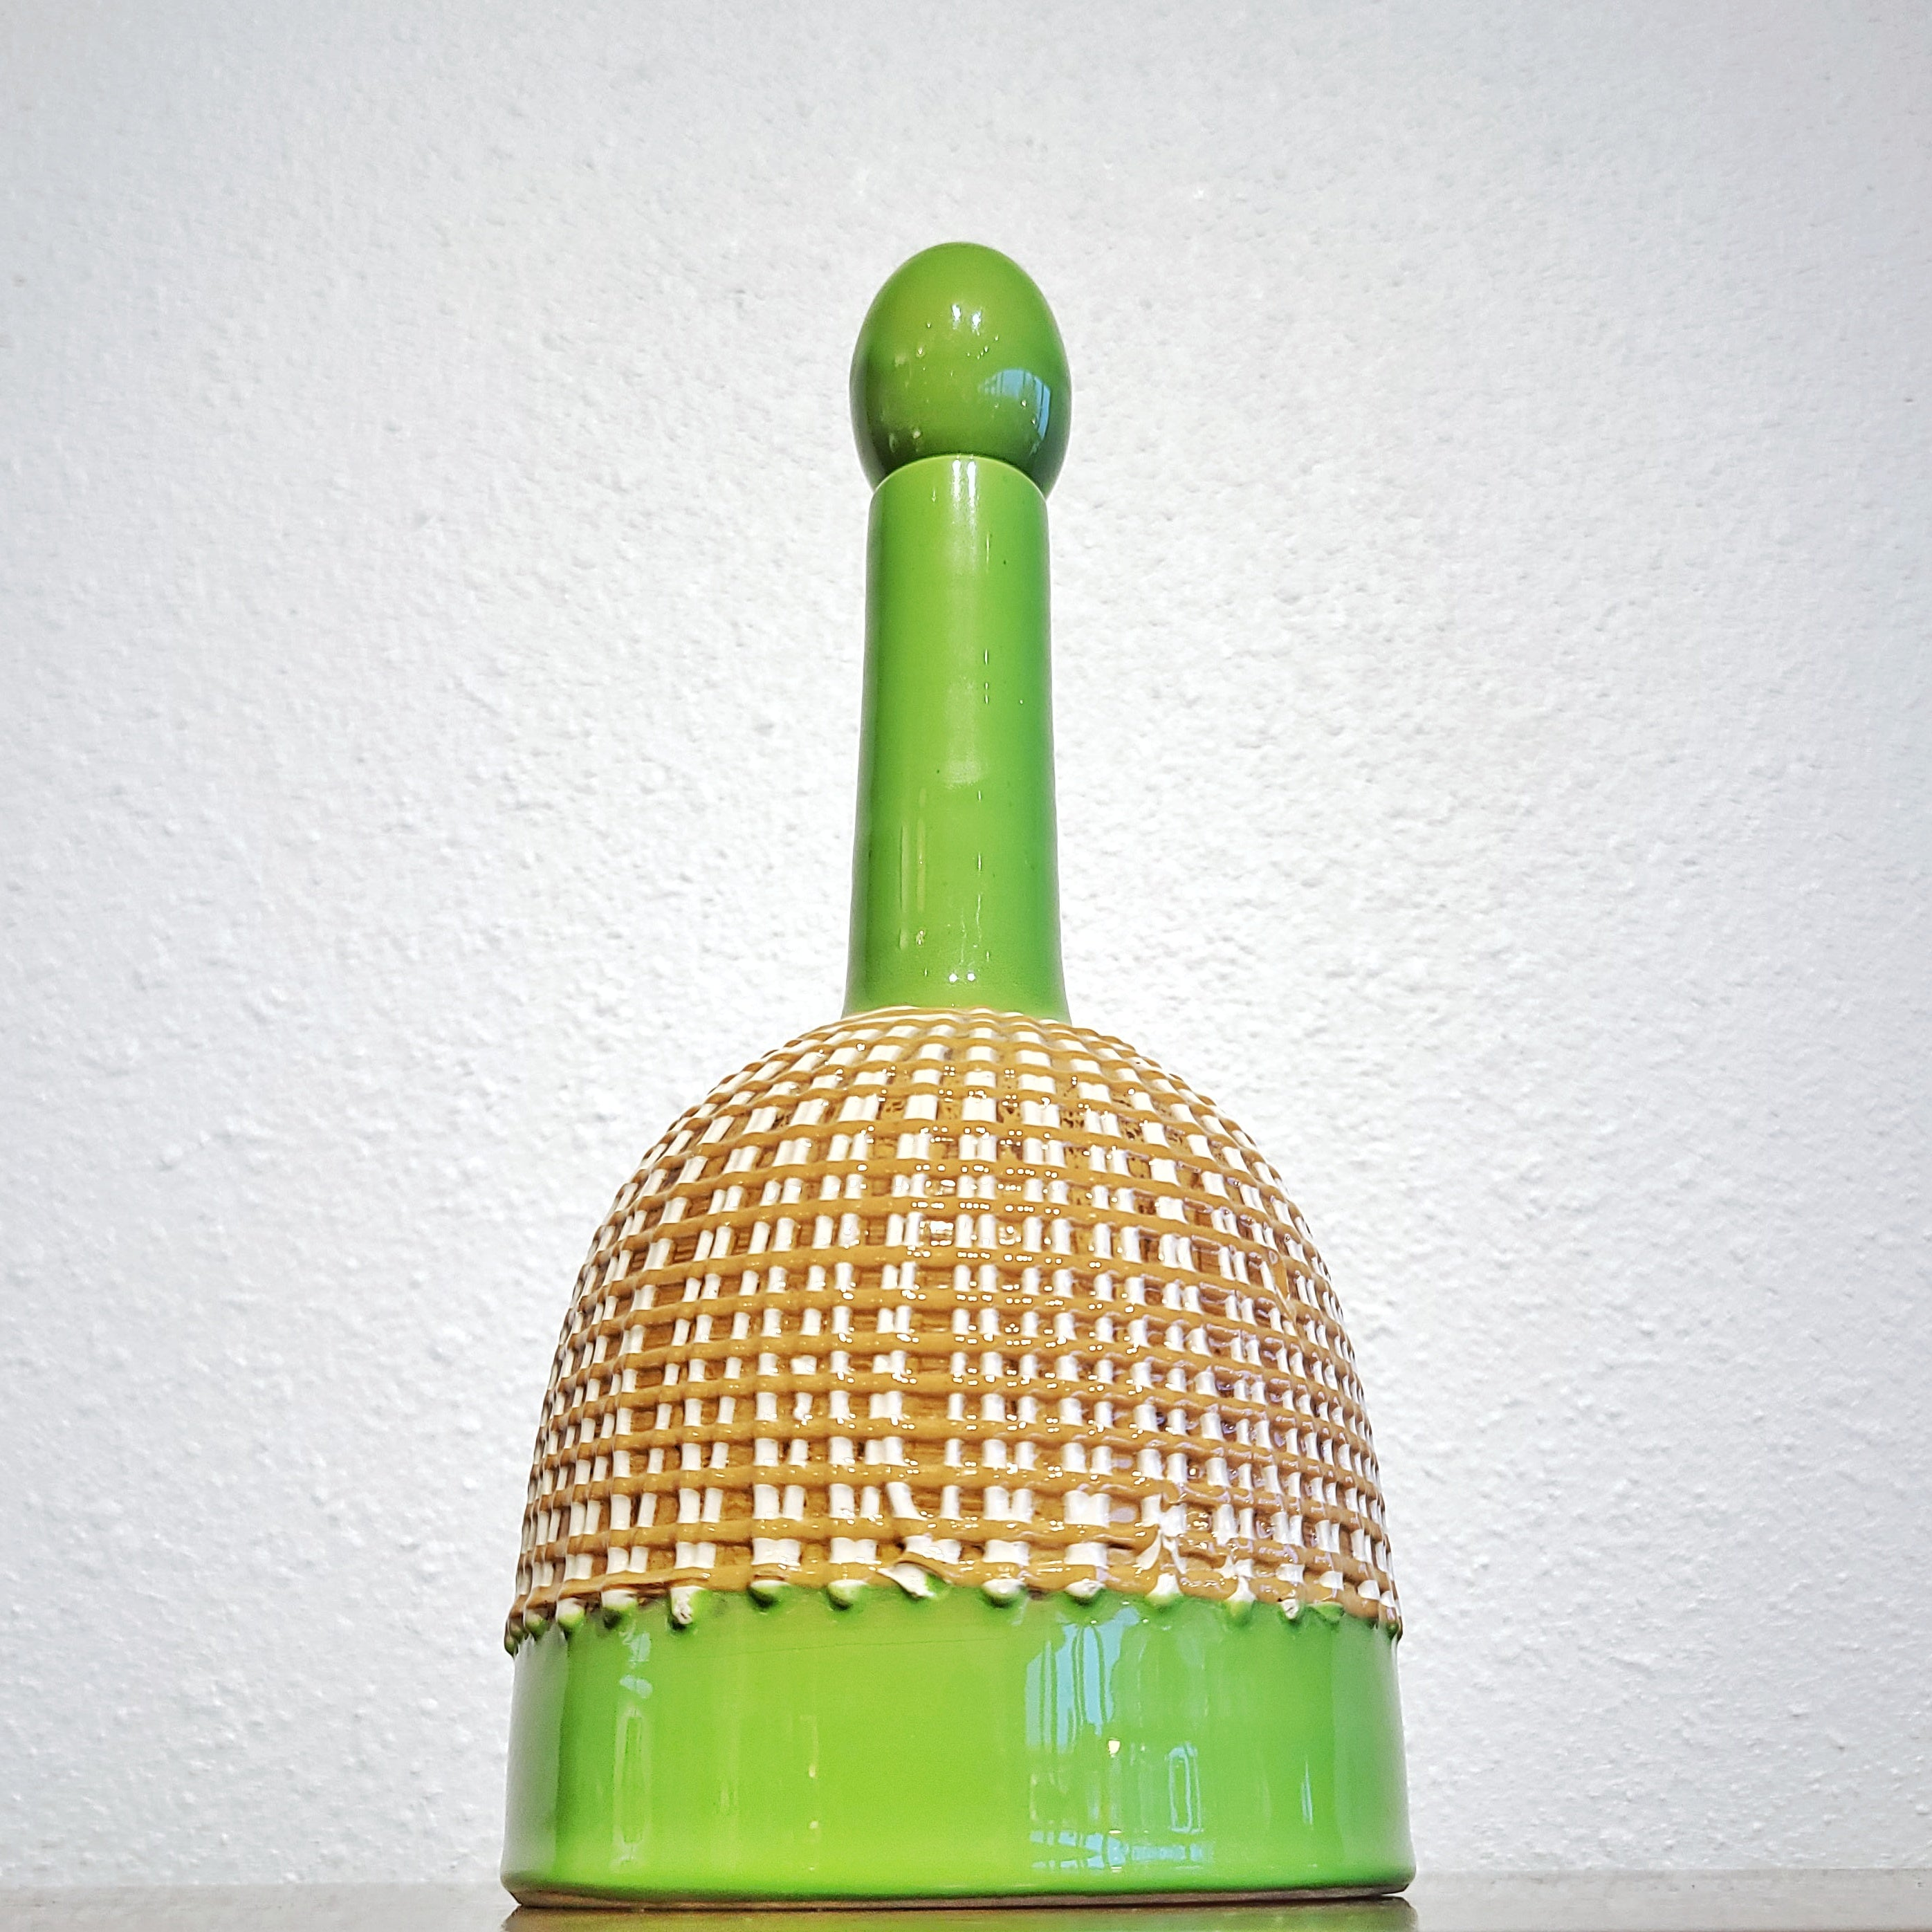 GREEN FRATELLI FANCIULLACCI DECANTER WITH STOPPER